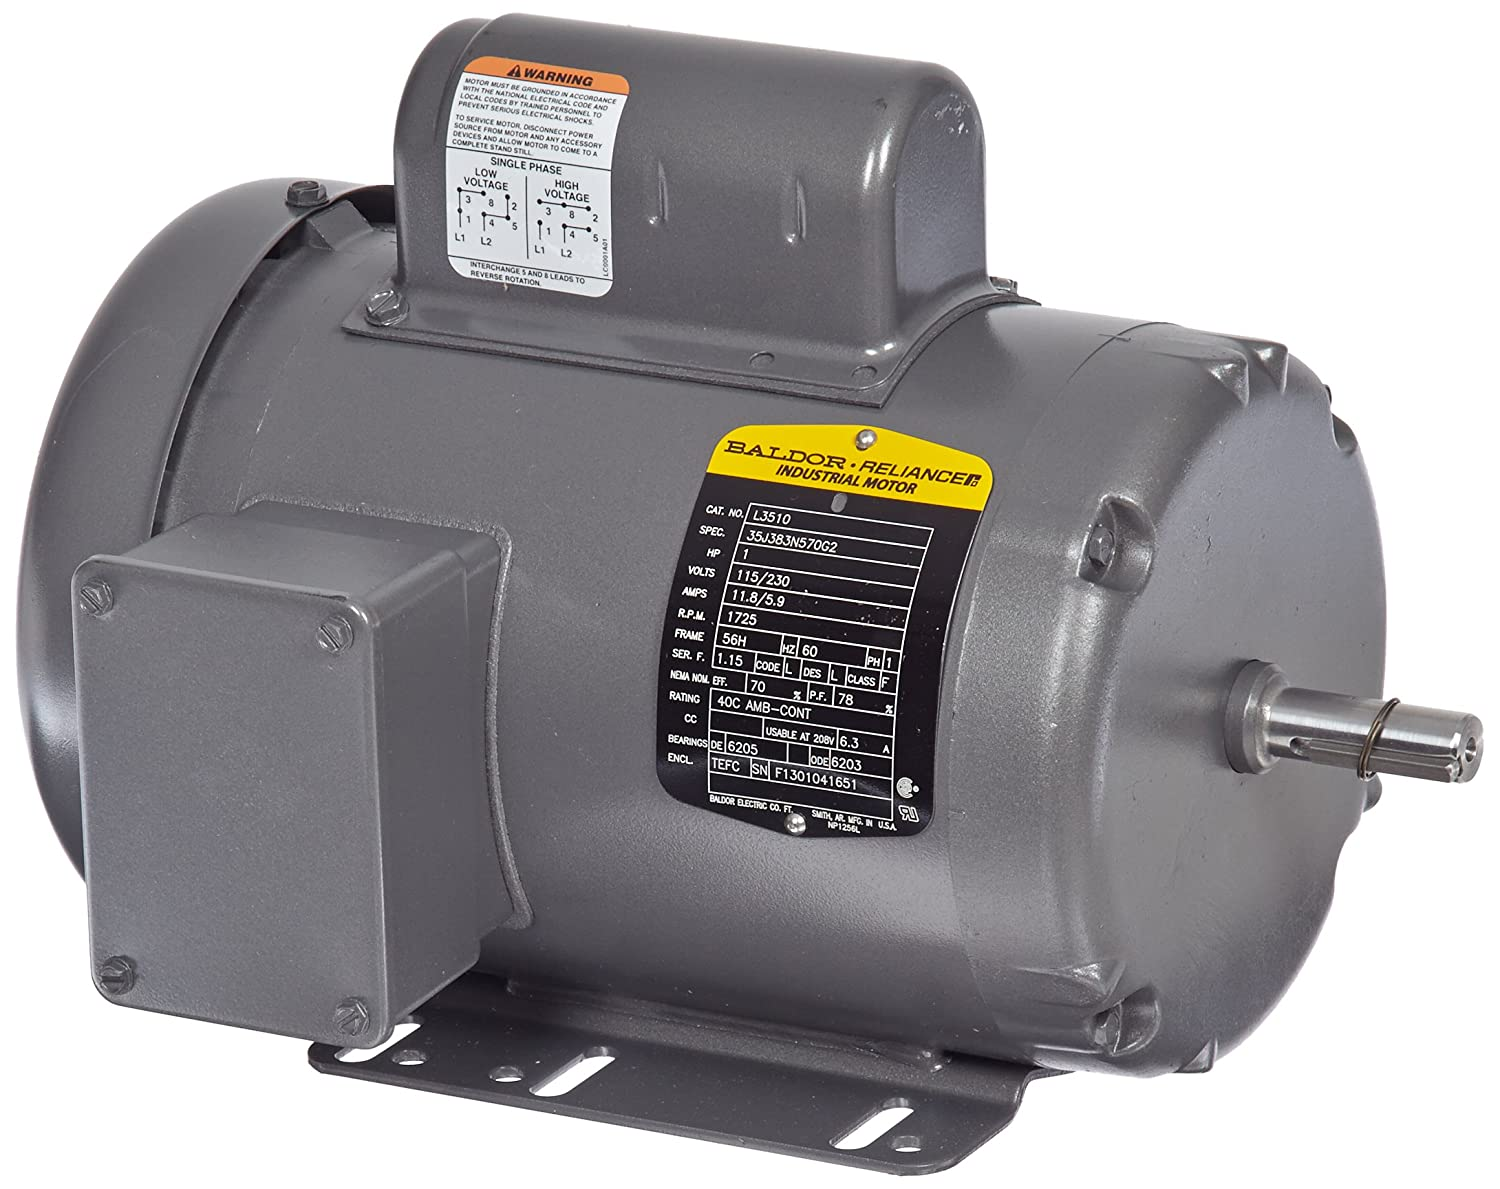 Baldor L3510 General Purpose AC Motor, Single Phase, 56H Frame, TEFC Enclosure, 1Hp Output, 1725rpm, 60Hz, 115/230V Voltage